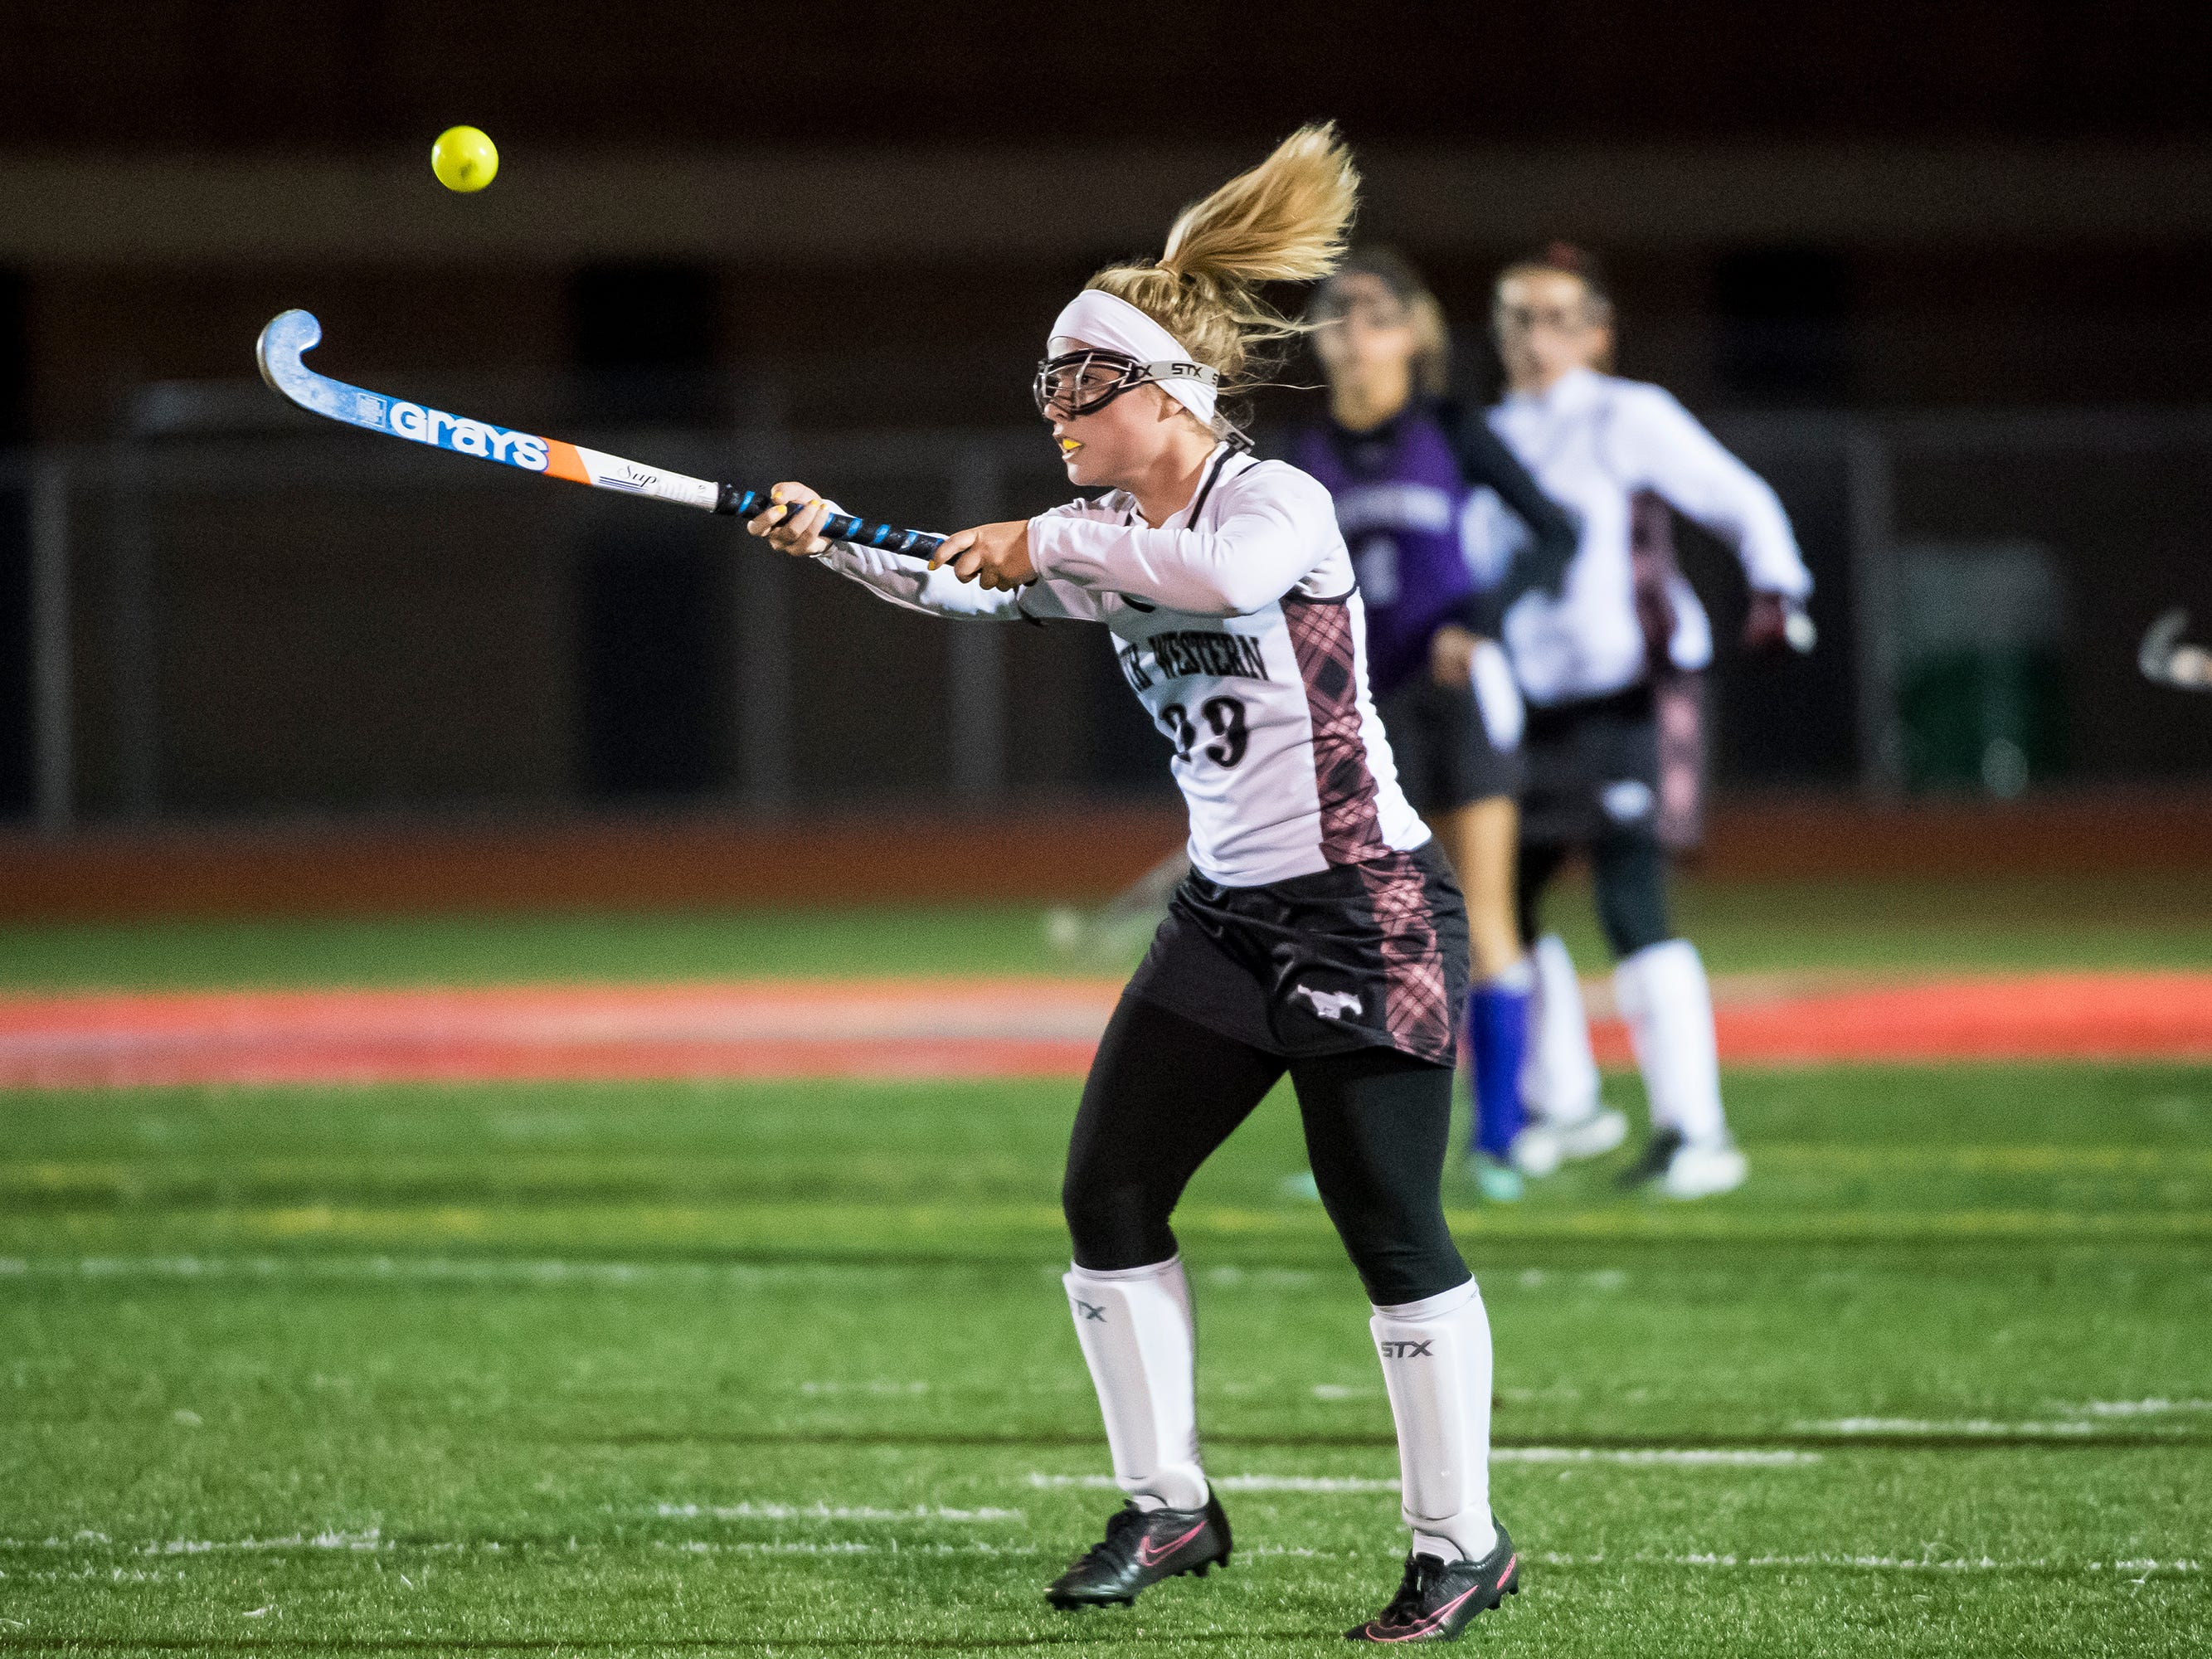 South Western's Albanie Hersh hits the ball in mid-air during play against Northern in a PIAA District III first round game at Bermudian Springs High School on Wednesday, October 24, 2018. The Mustangs fell 4-2.